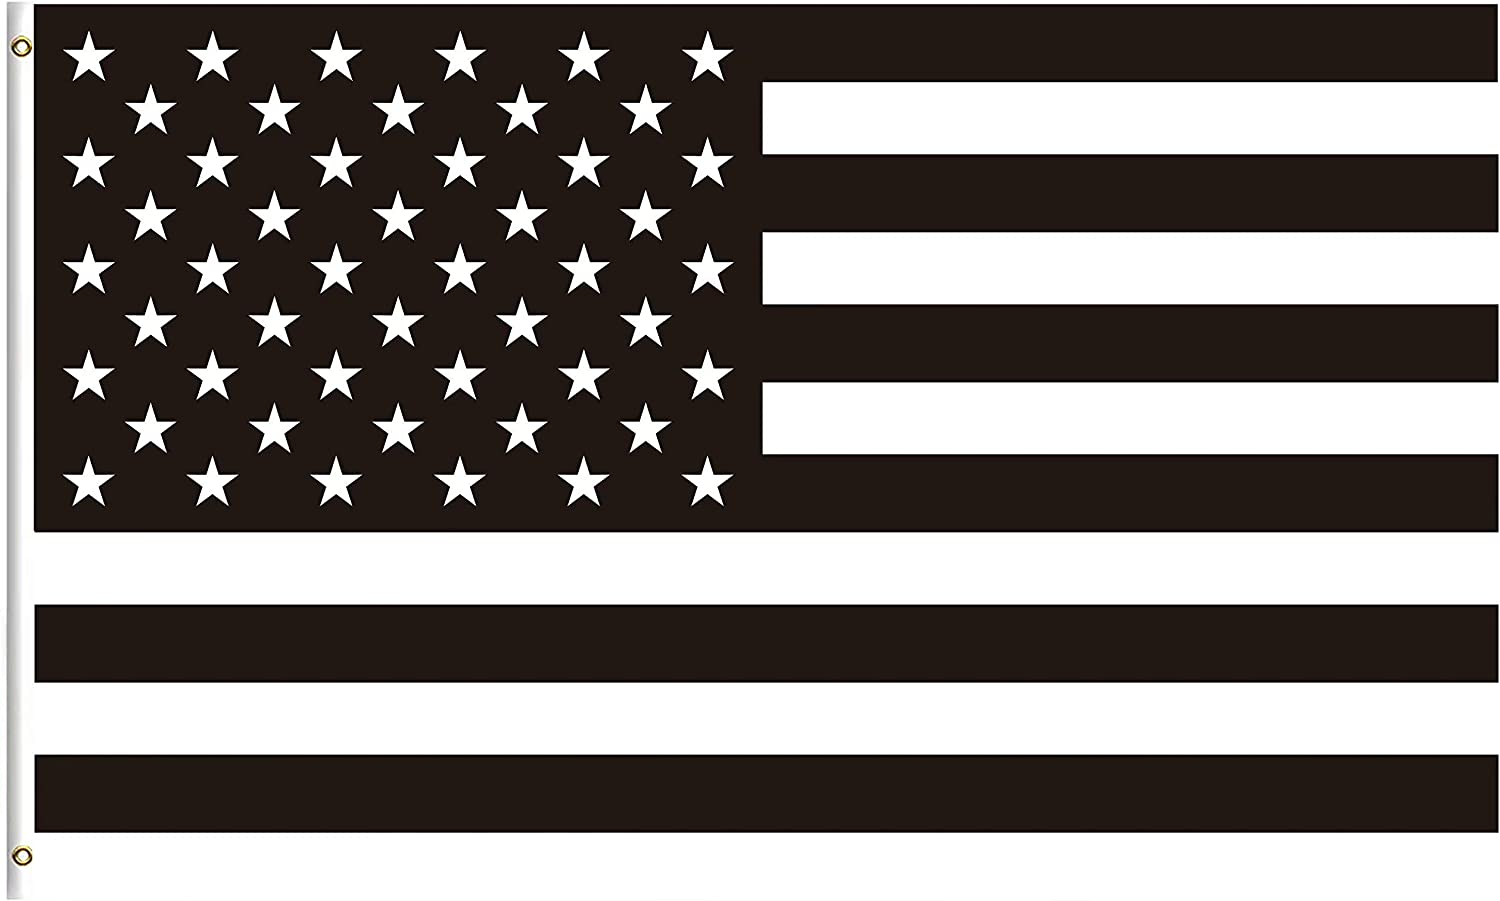 Amazon.com : ShineSnow Black and White American Flag 5x8 Feet Flag, Polyester 4th of July Independence Memorial Day Patrotic Double Stitched with Brass Grommets 5 X 8 Ft Flag for Outdoor Indoor